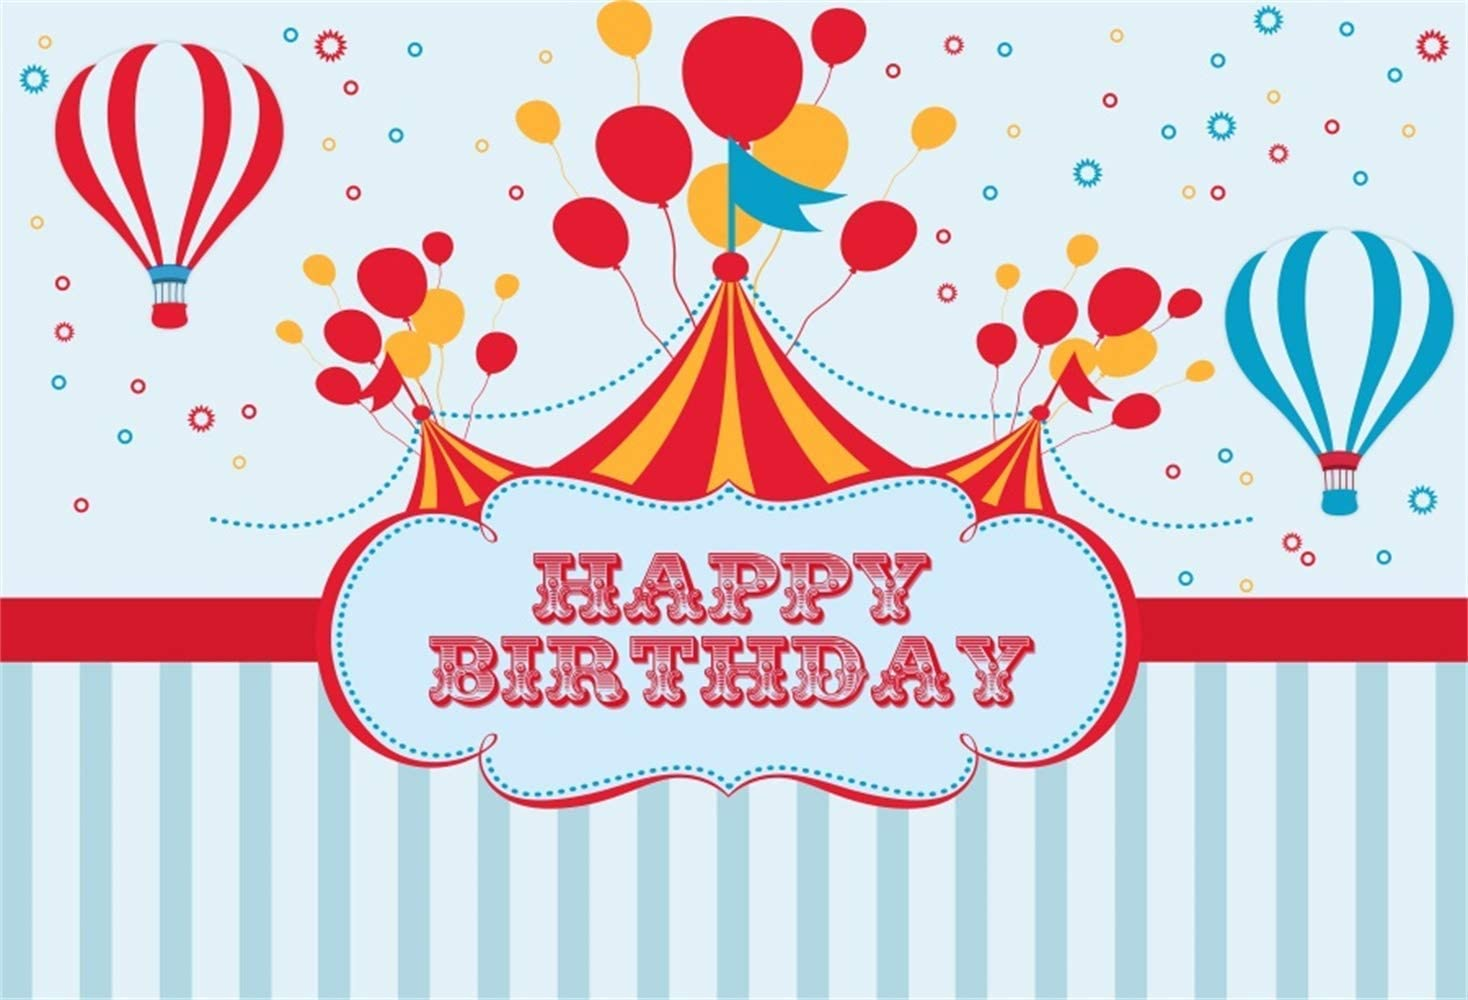 8x6.5ft Happy Birthday Polyester Photography Background Cartoon Circus Tent Fire Balloons Fireworks Blue Striped Backdrop Child Baby Birthday Party Banner Cake Smash Childish Wallpaper